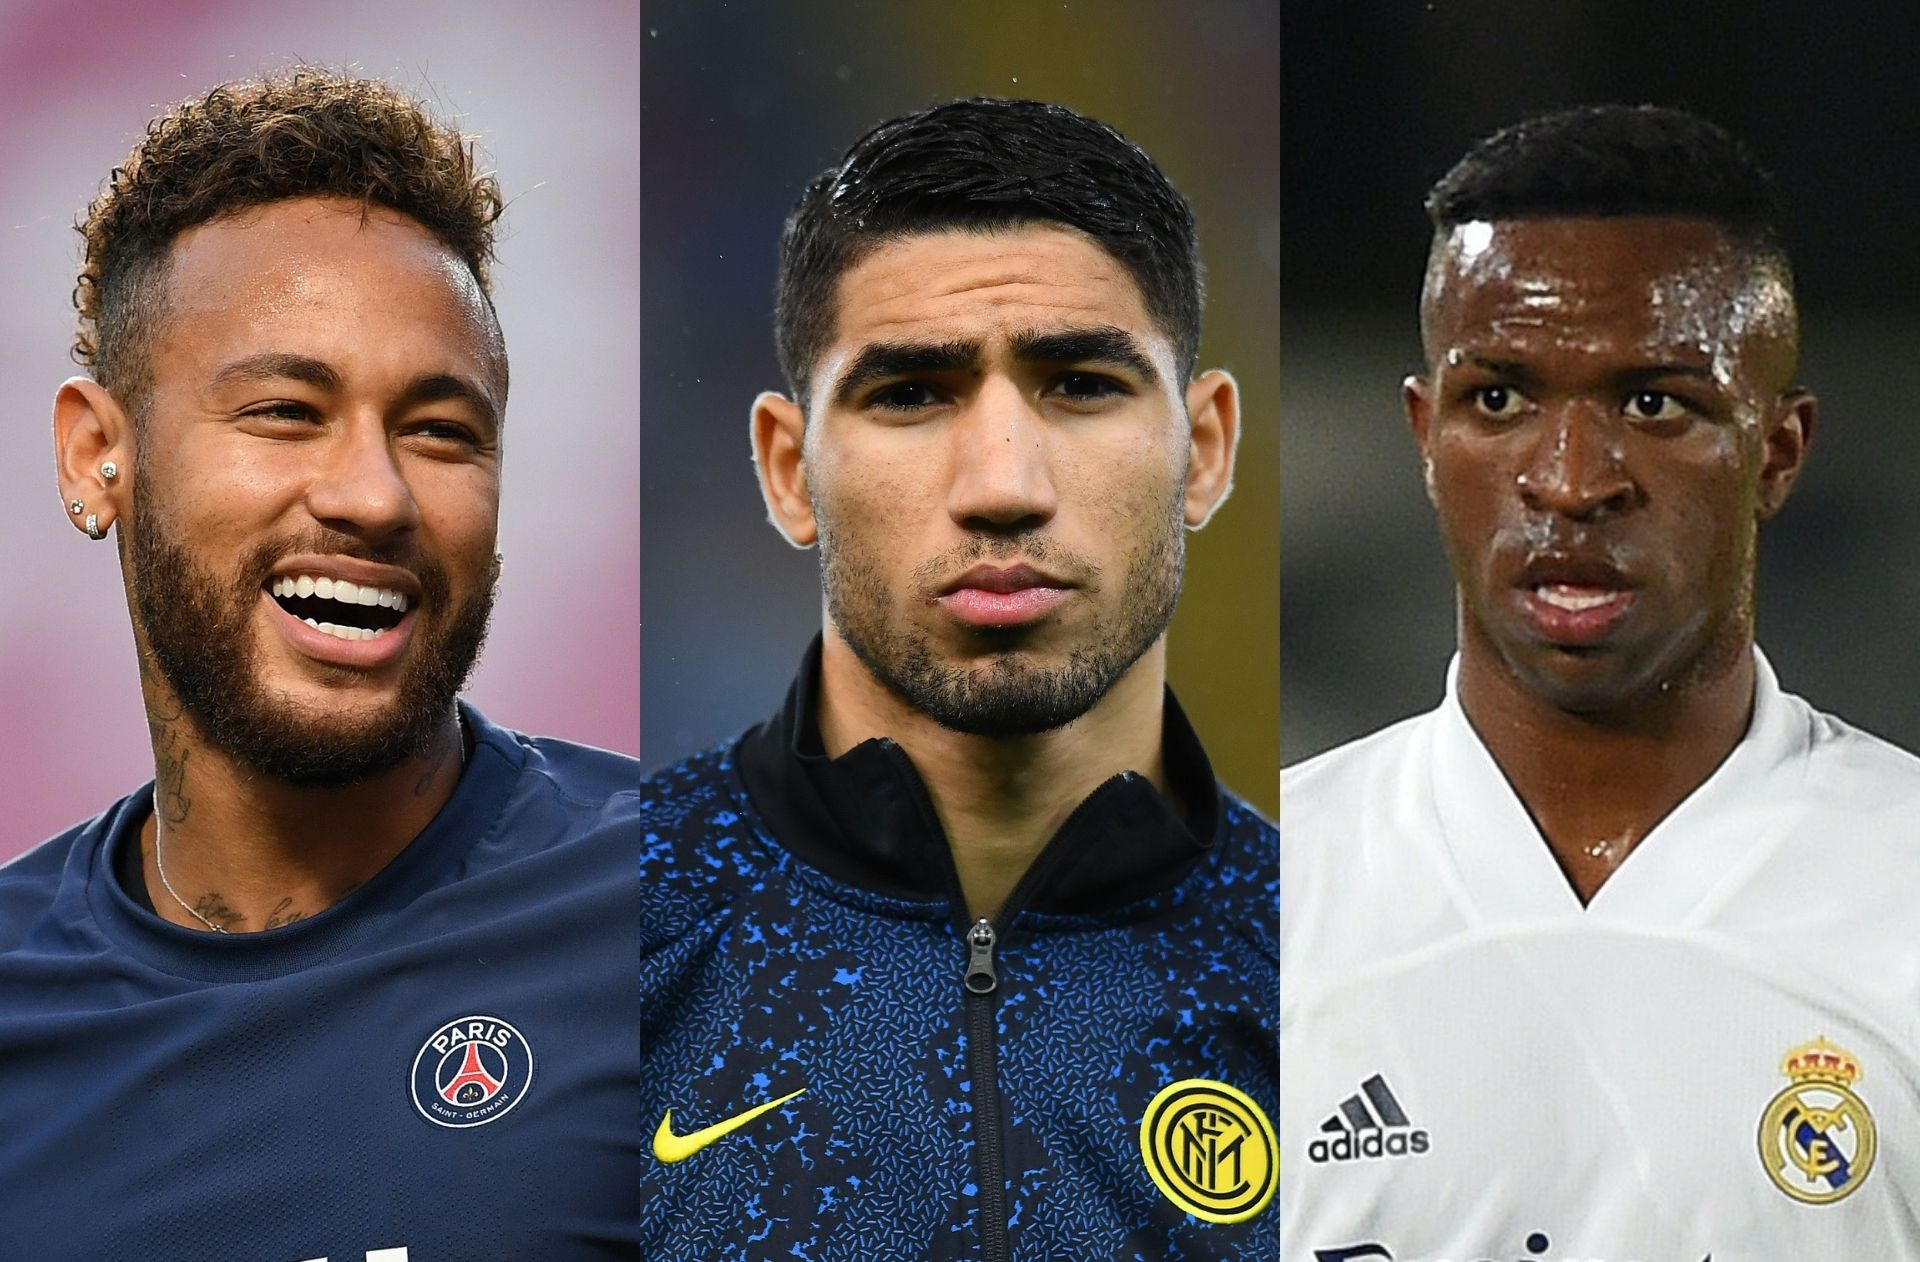 Wednesday's transfer rumors - 3 Premier League clubs target Hakimi